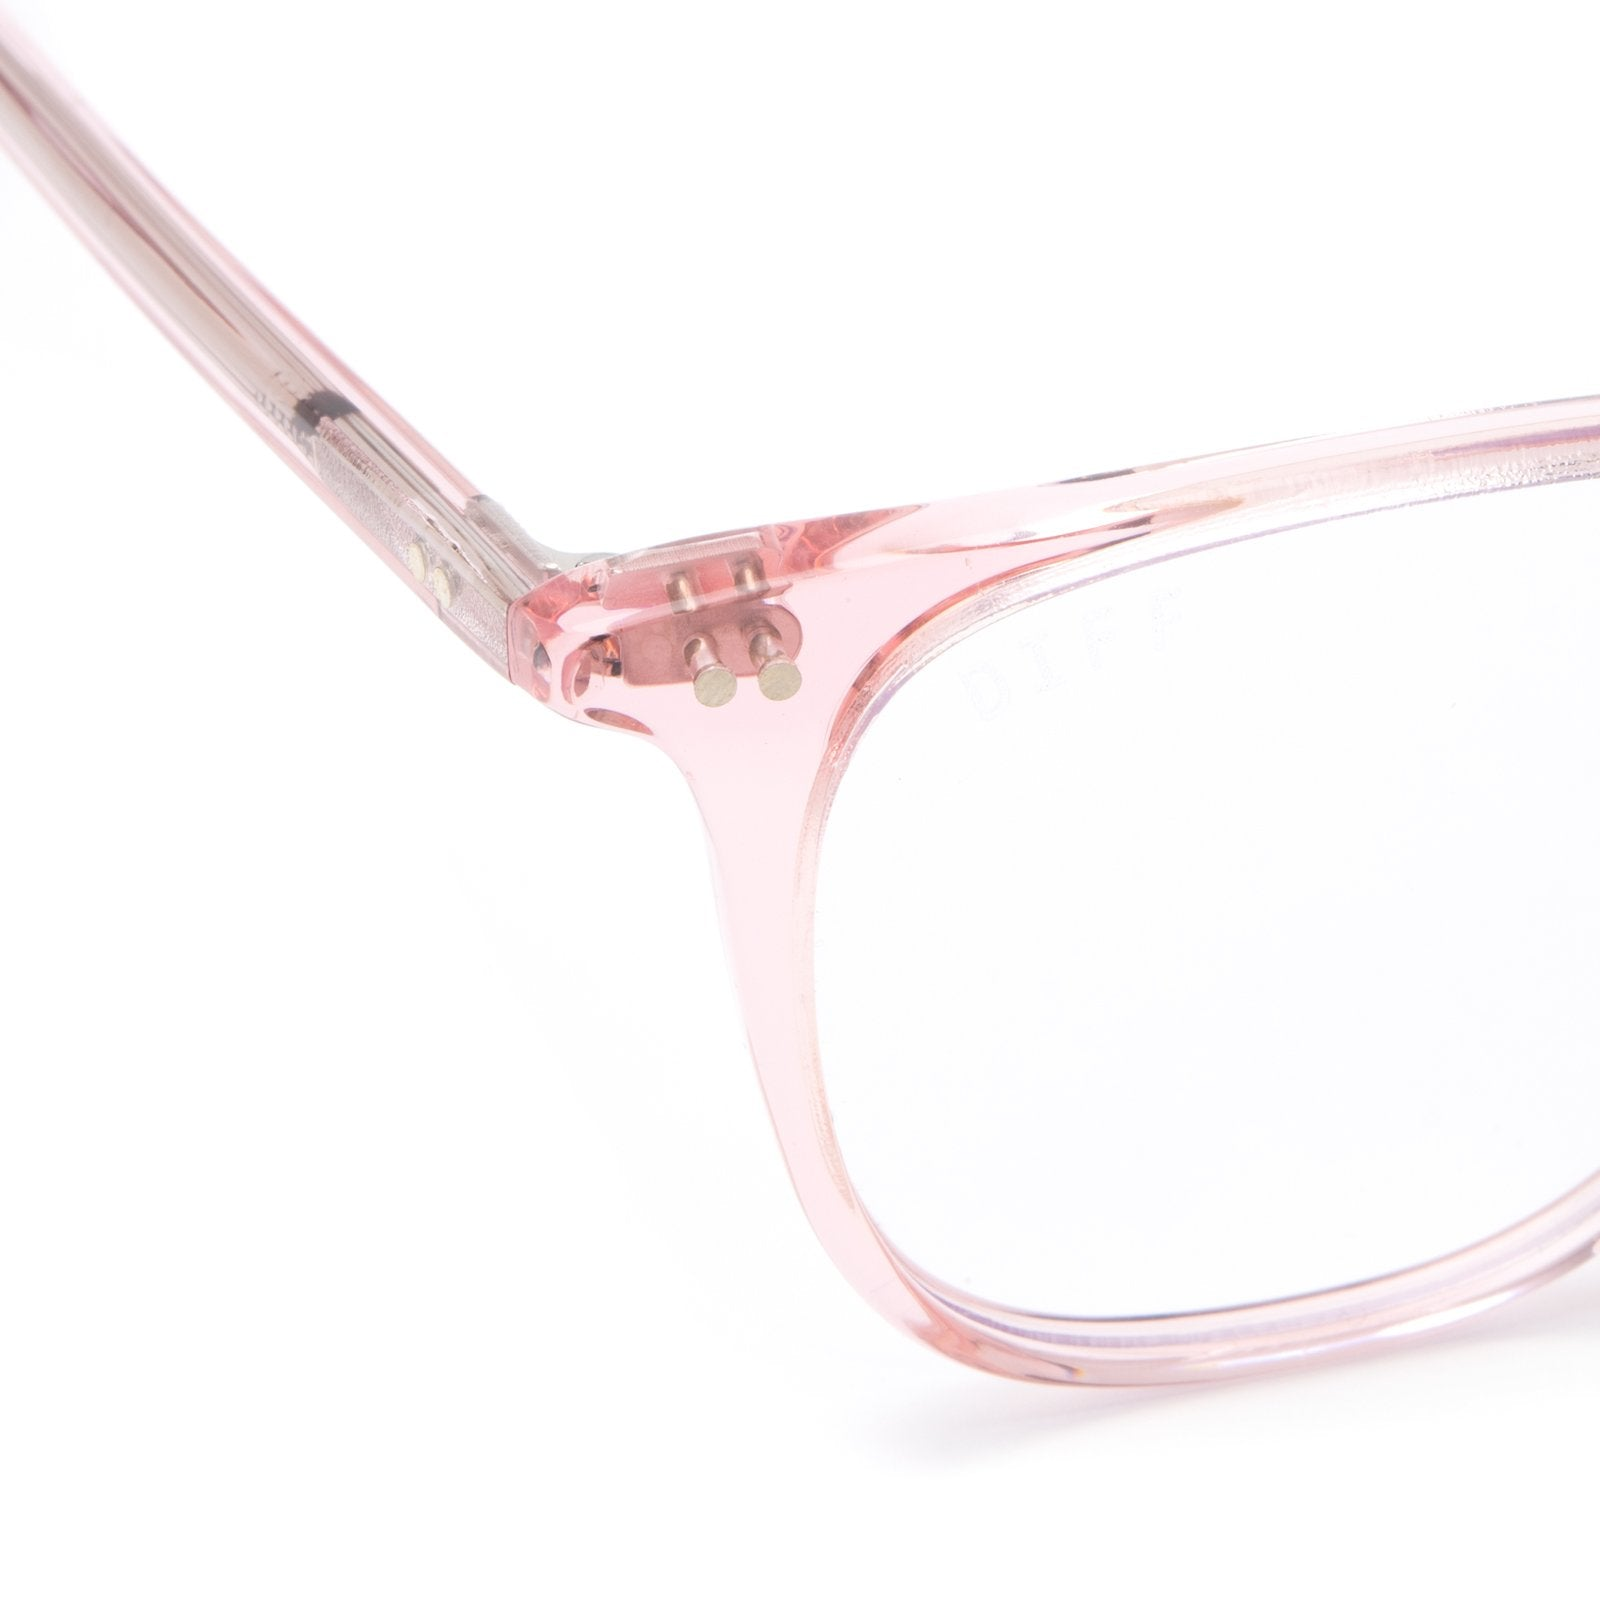 Maxwell prescription glasses with light pink frames detailed shot